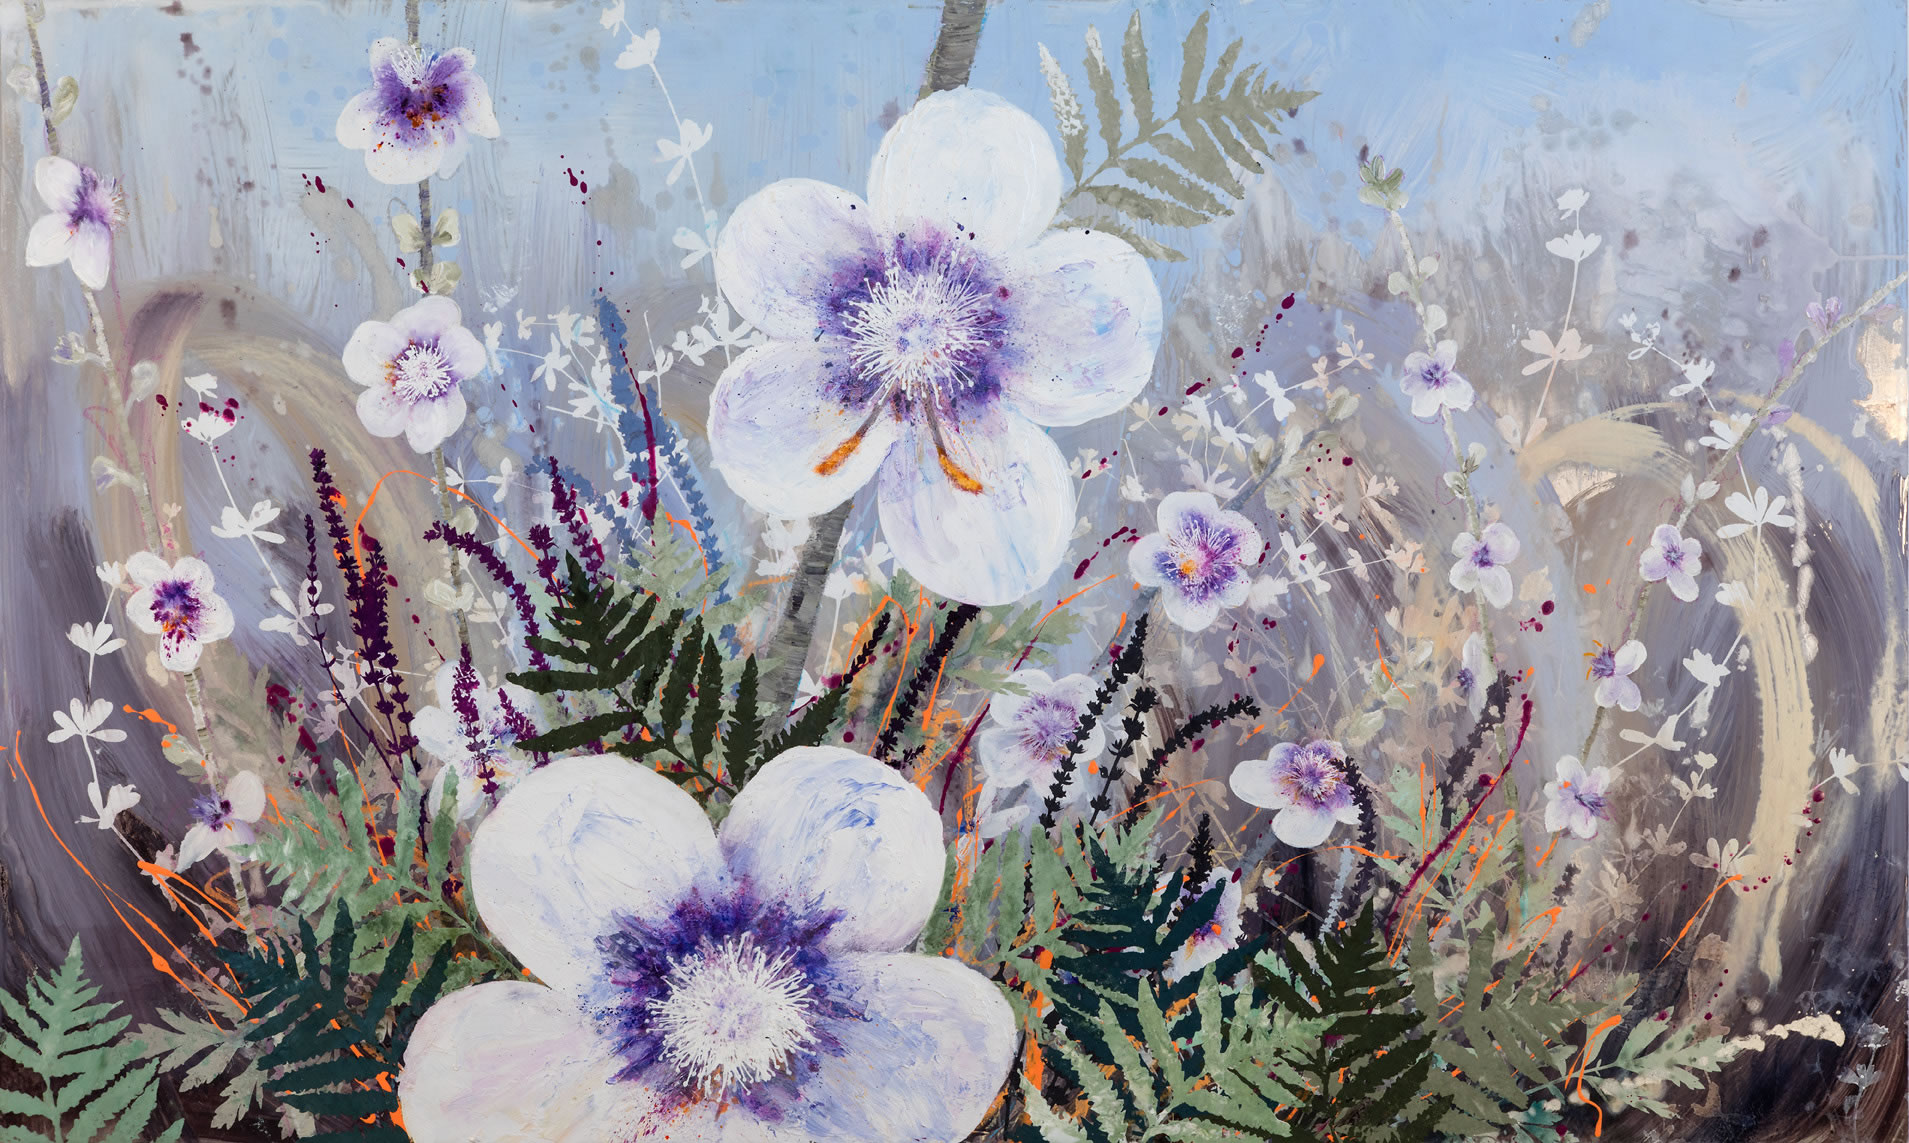 painting, Invasive Beauties 1 by Cara Enteles